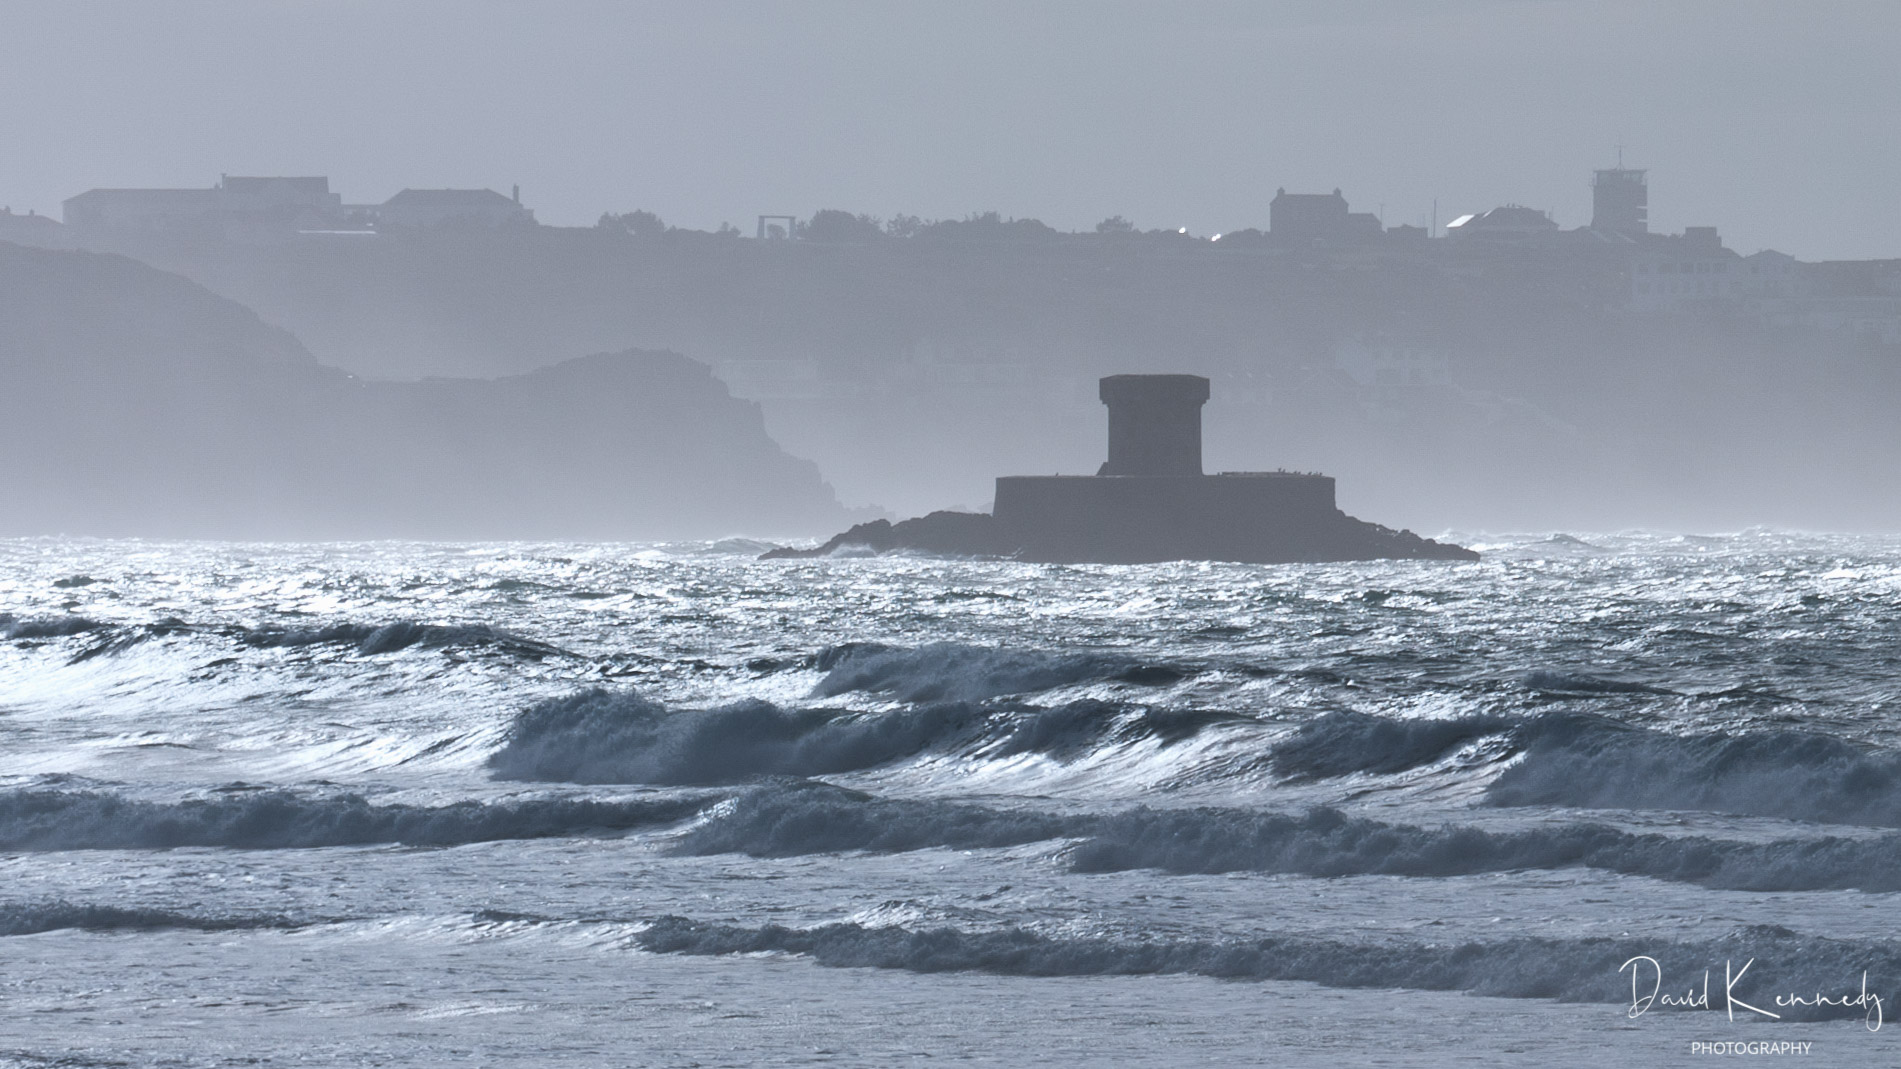 Napoleonic era defence tower on a rock in a lively sea